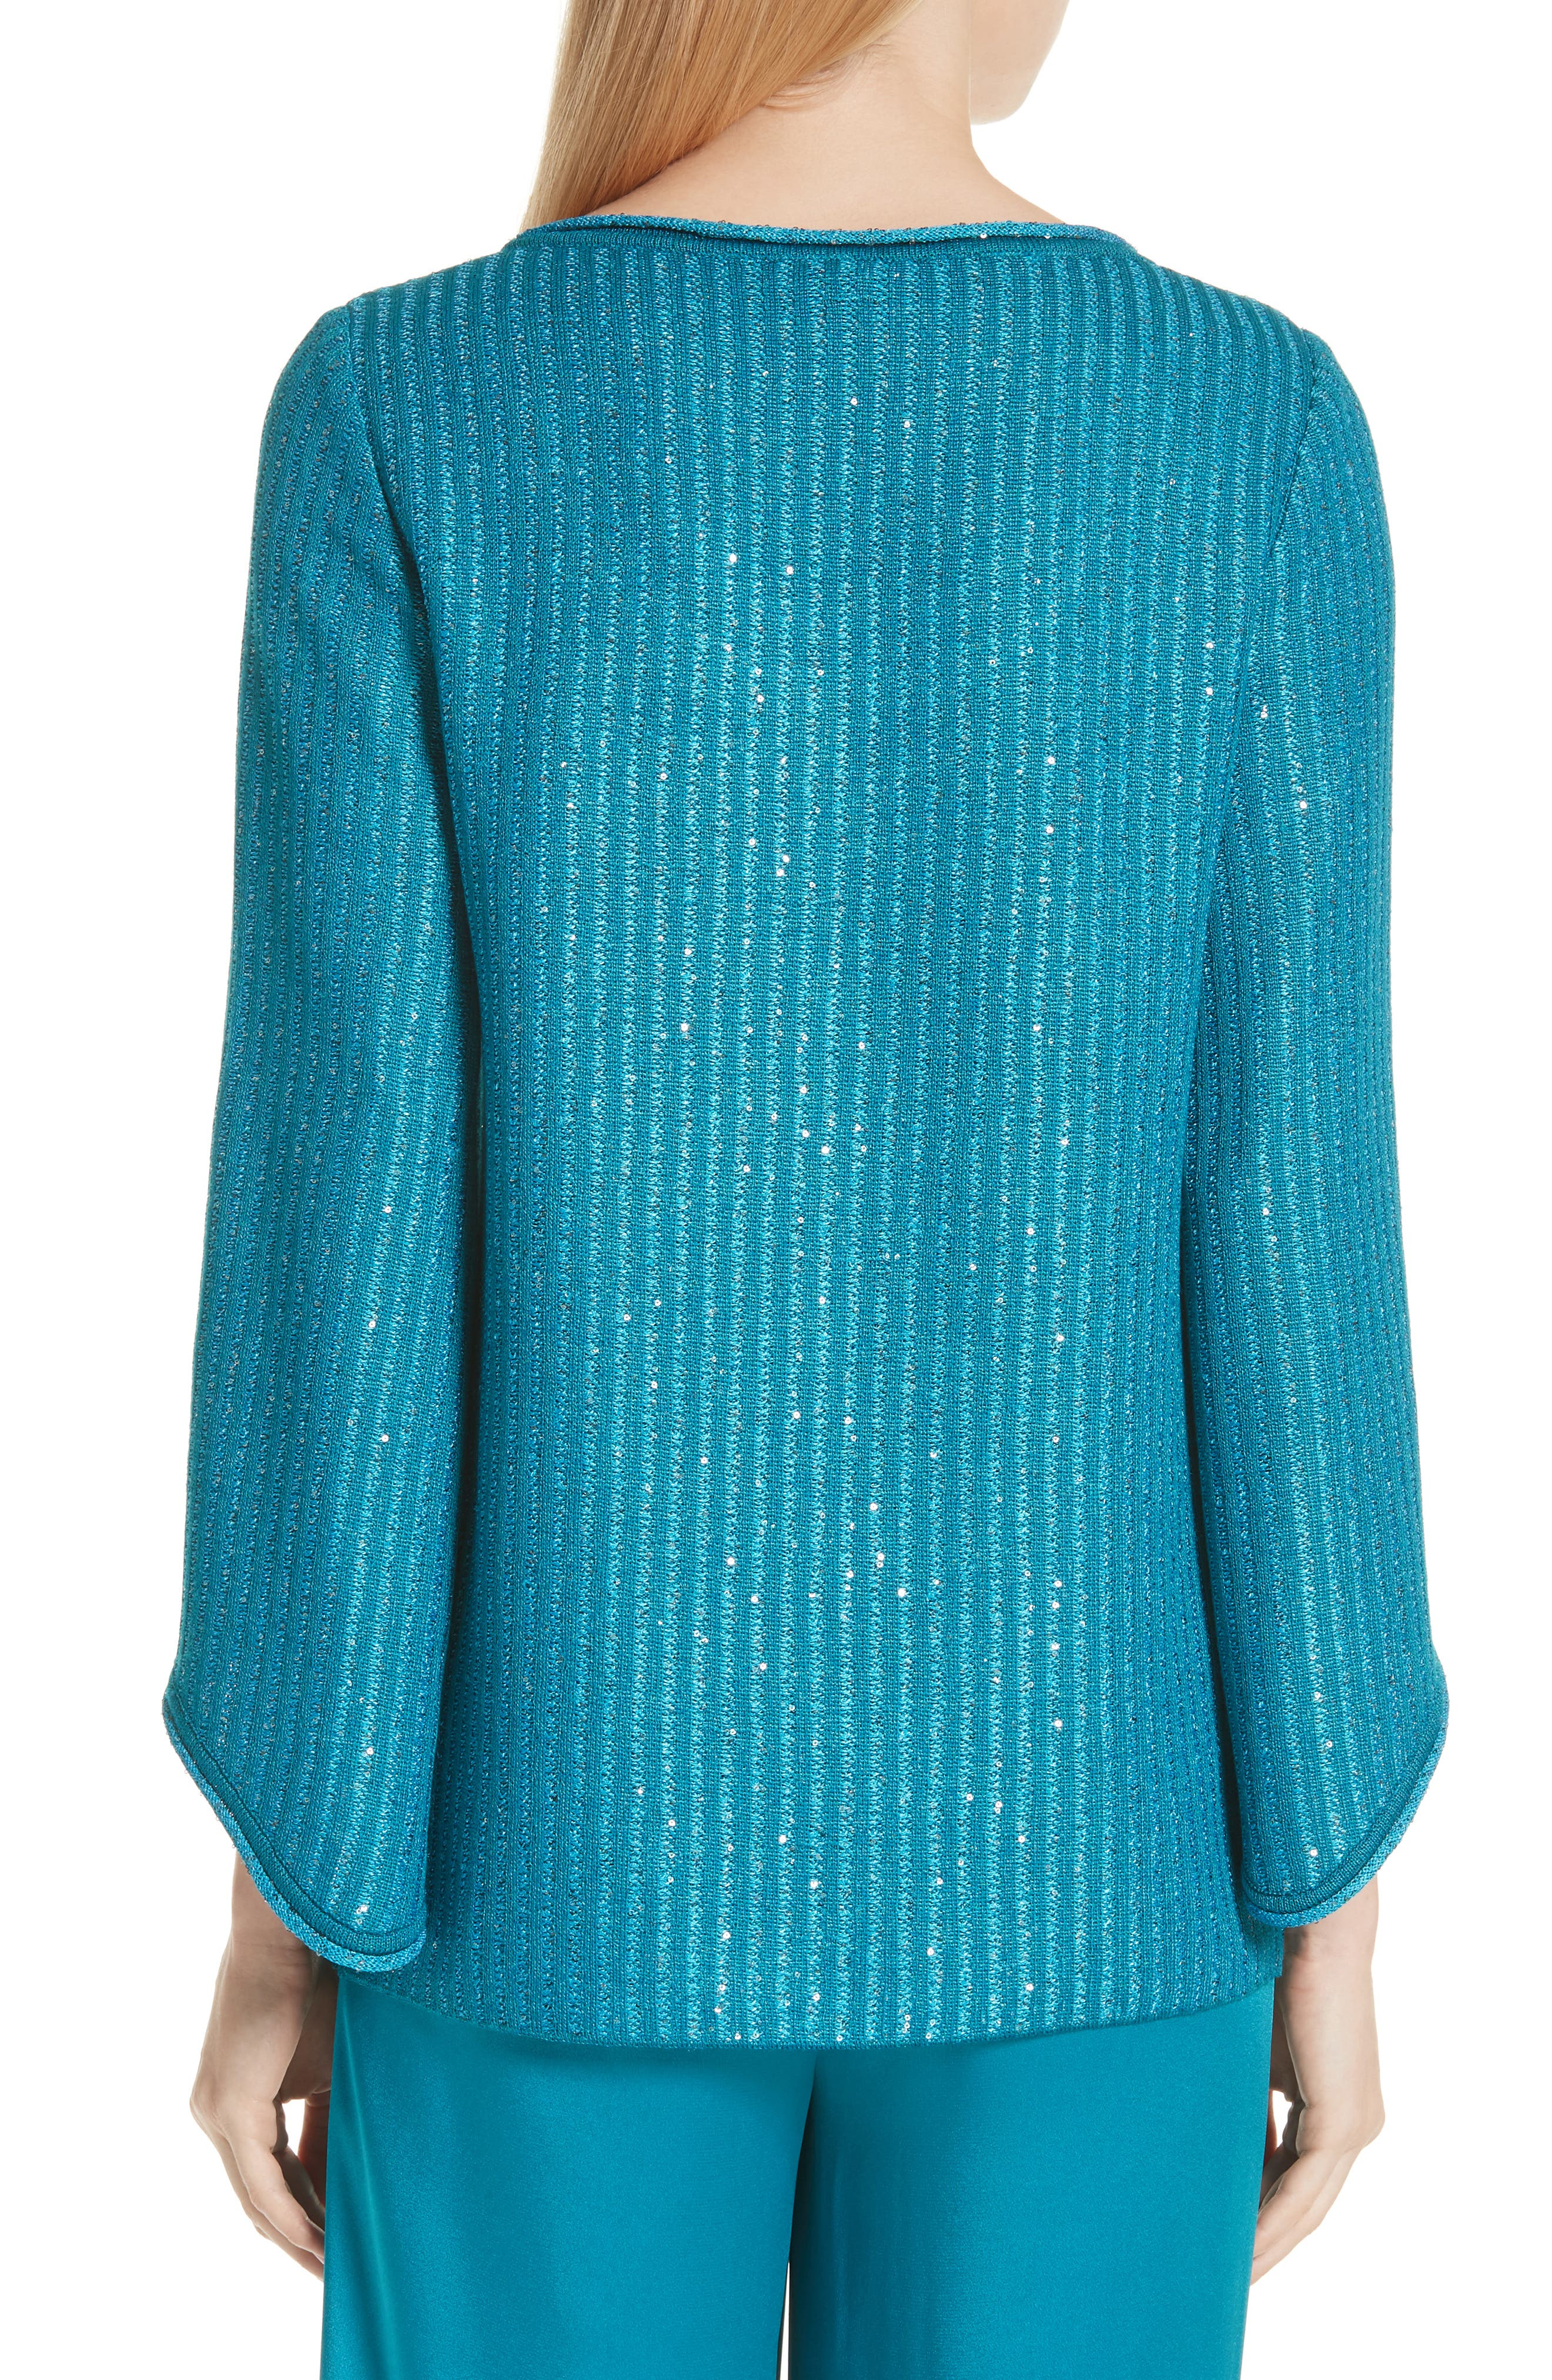 Sequin Rib Knit Sweater,                             Alternate thumbnail 2, color,                             400